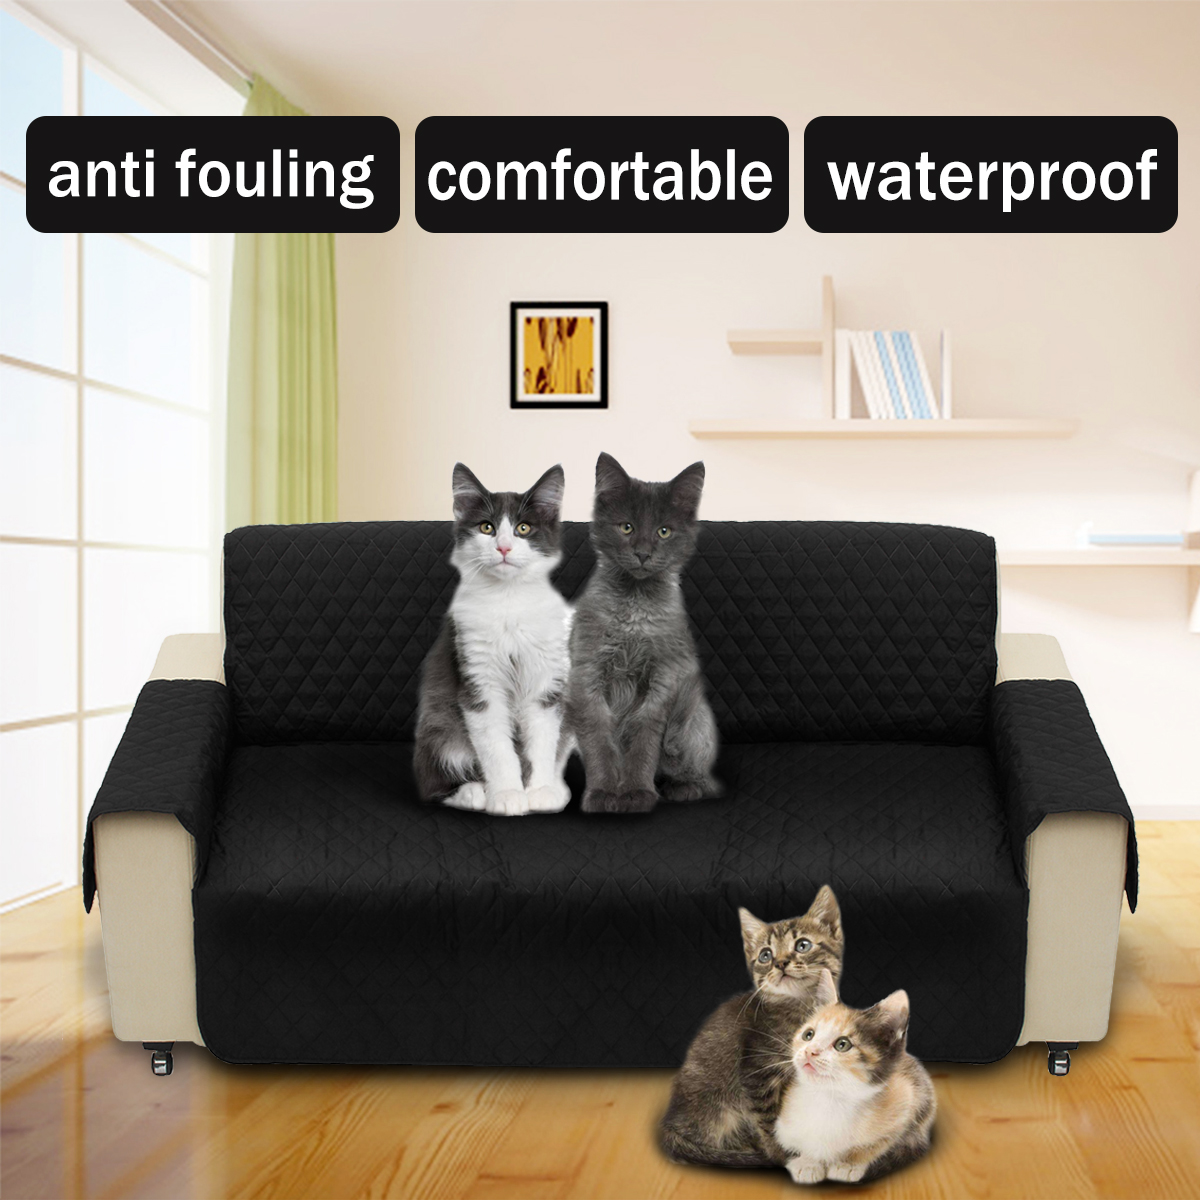 Black Pet Sofa Couch Protective Cover Pad Removable W/ Strap Waterproof 2 Seater SKU846168